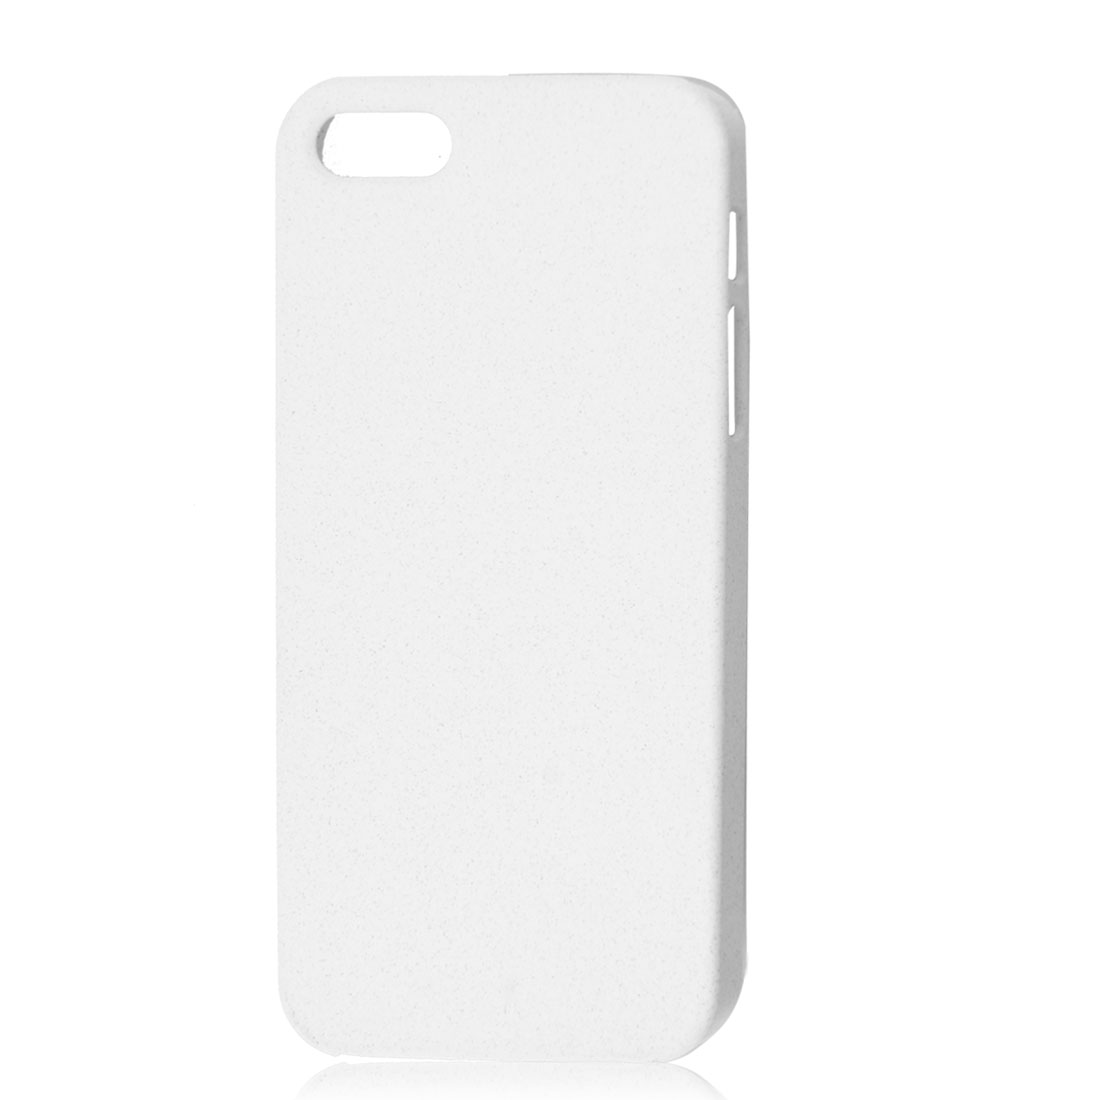 White Hard Back Case Cover Protector for iPhone 5 5G 5th Gen